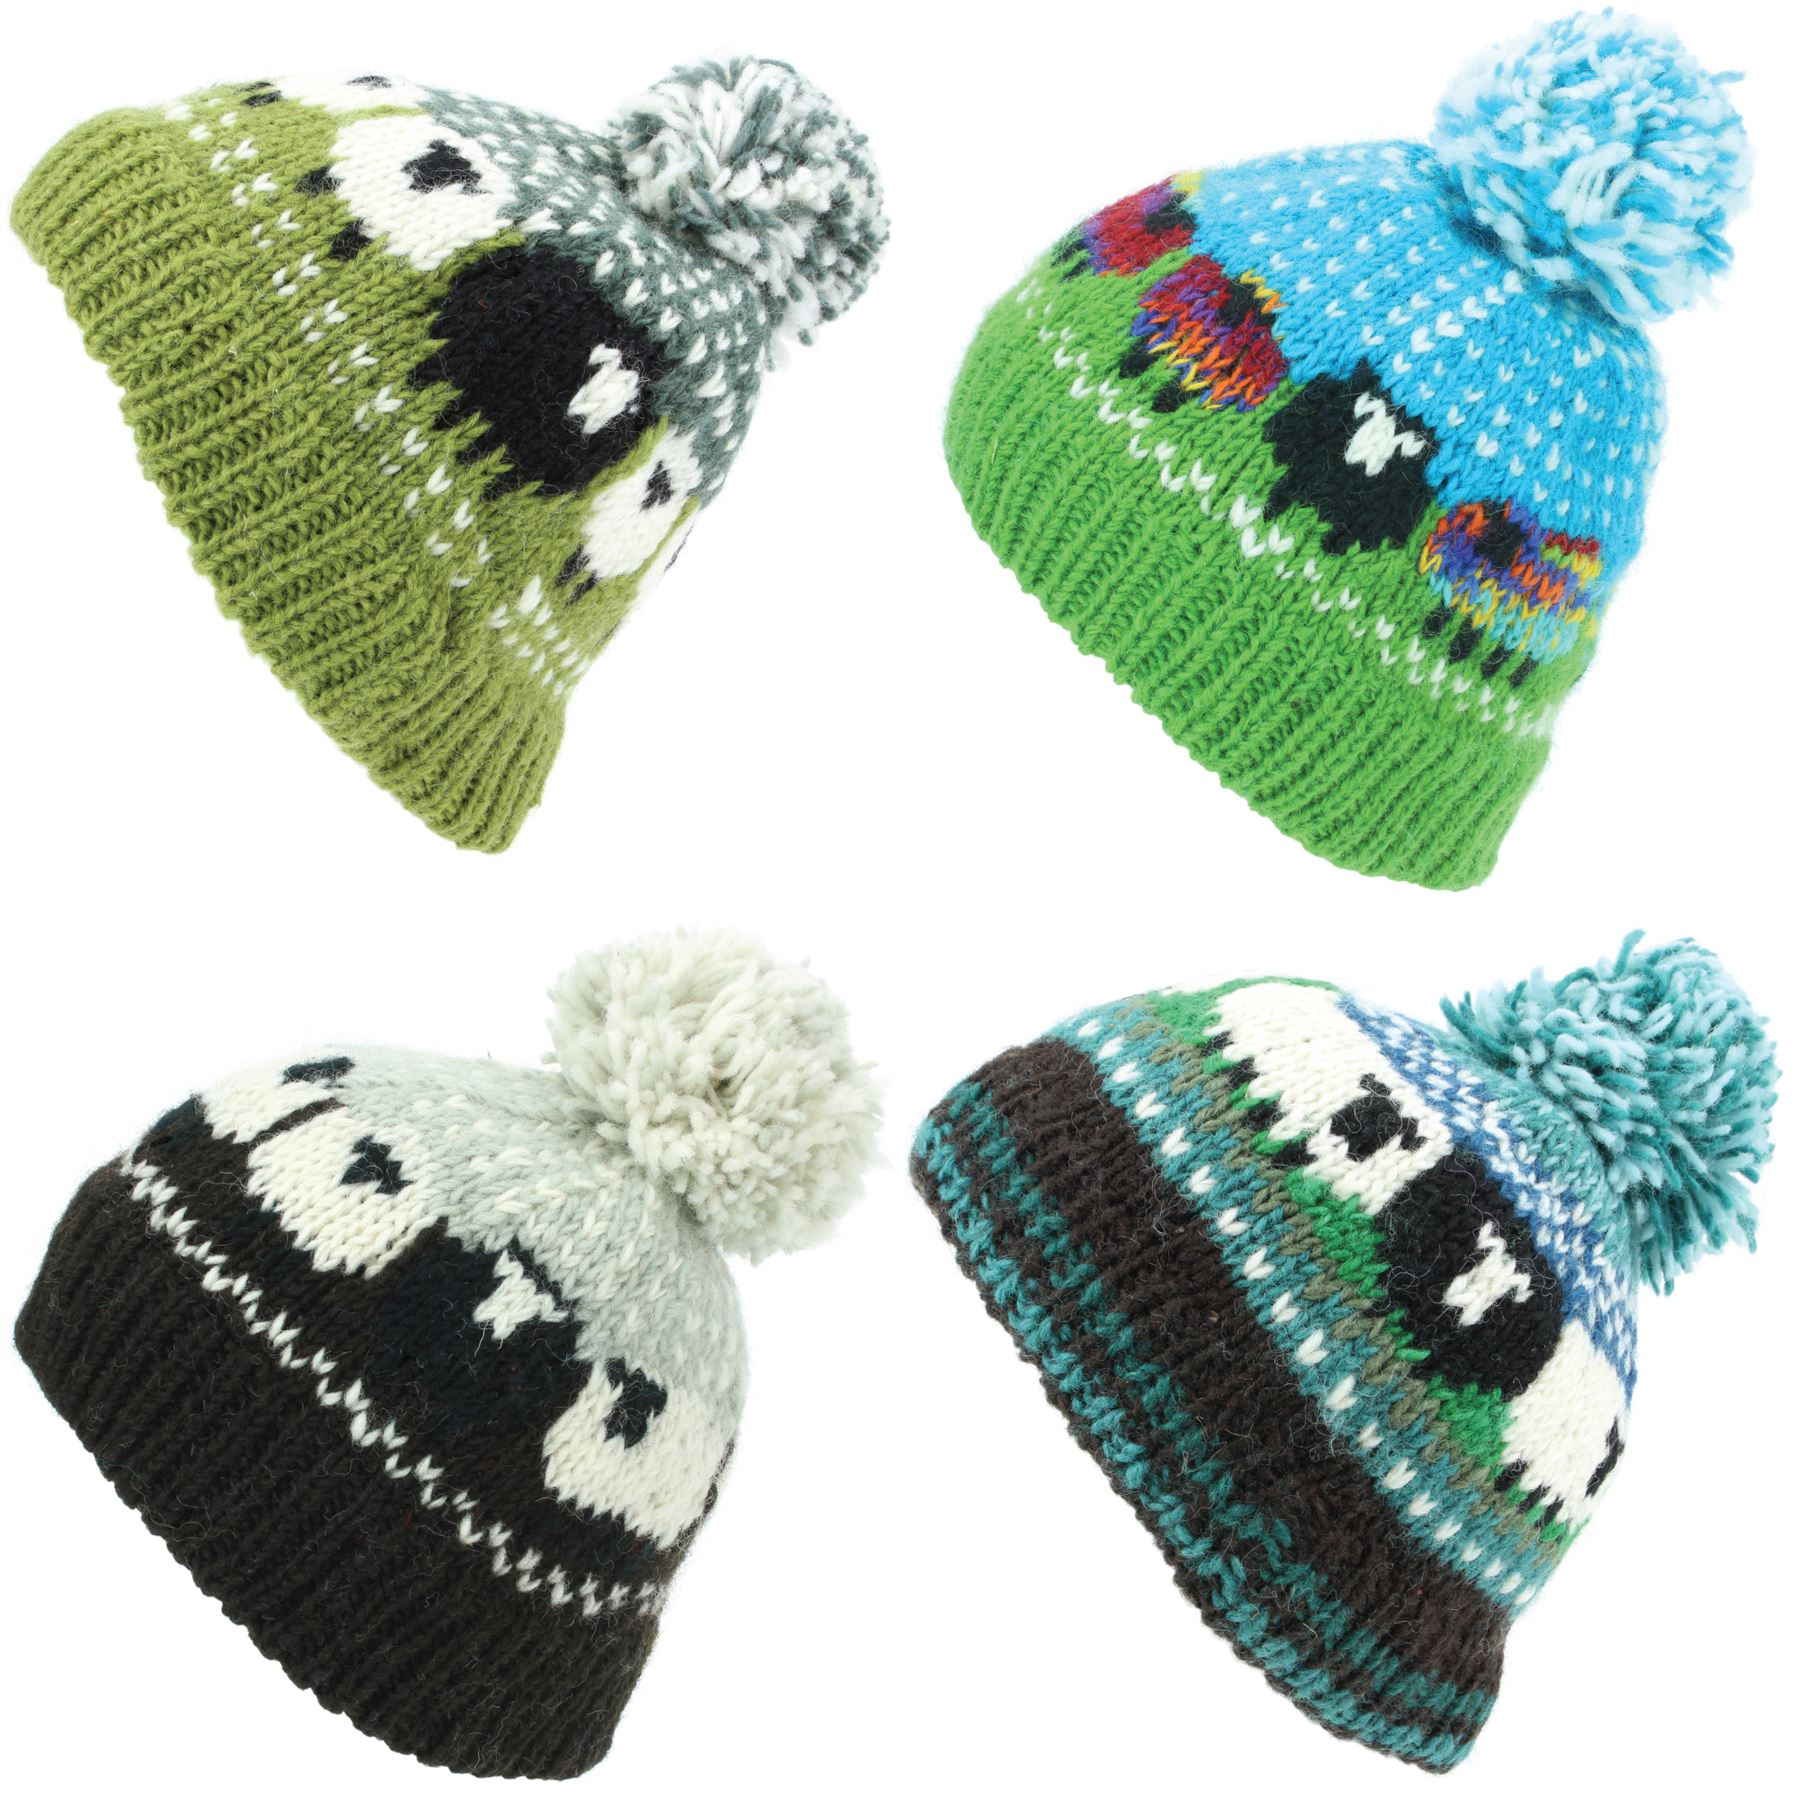 dec1879b96e Details about Chunky Wool Knit Beanie Bobble Hat Men Ladies Warm Winter  Sheep Black Sheep